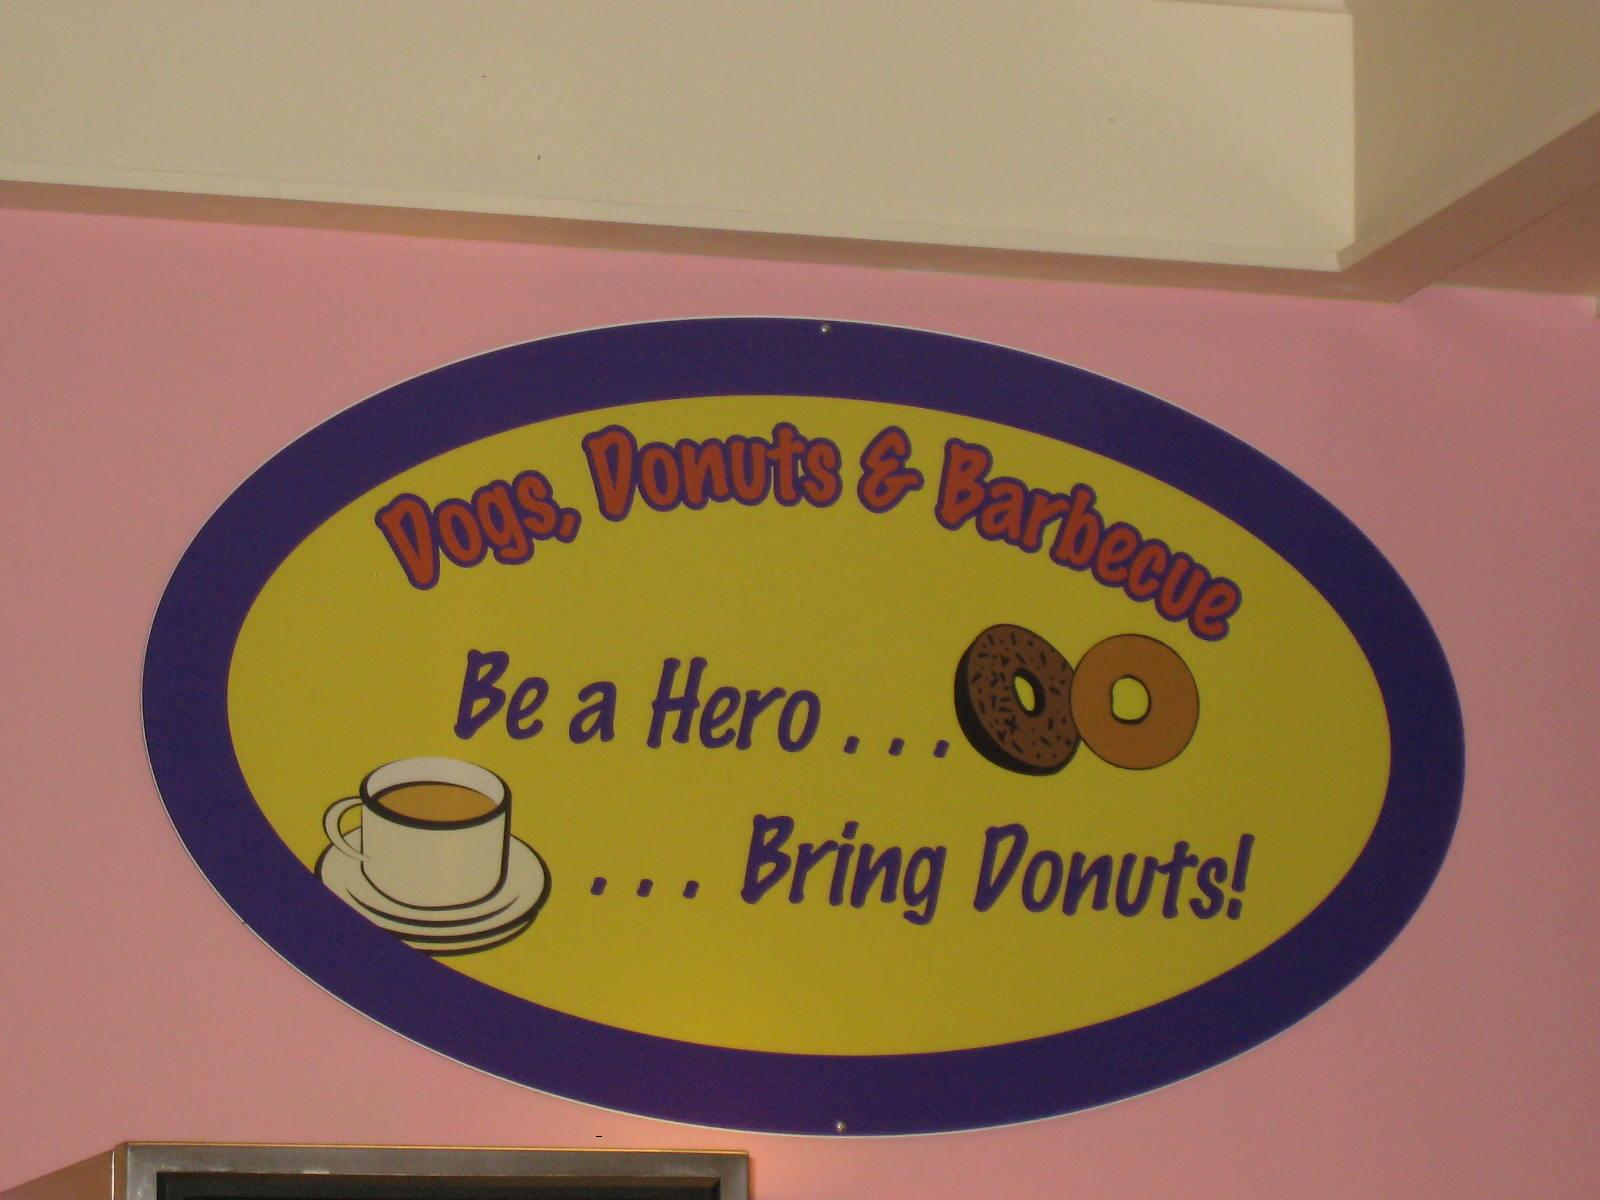 krispy kreme mission statement